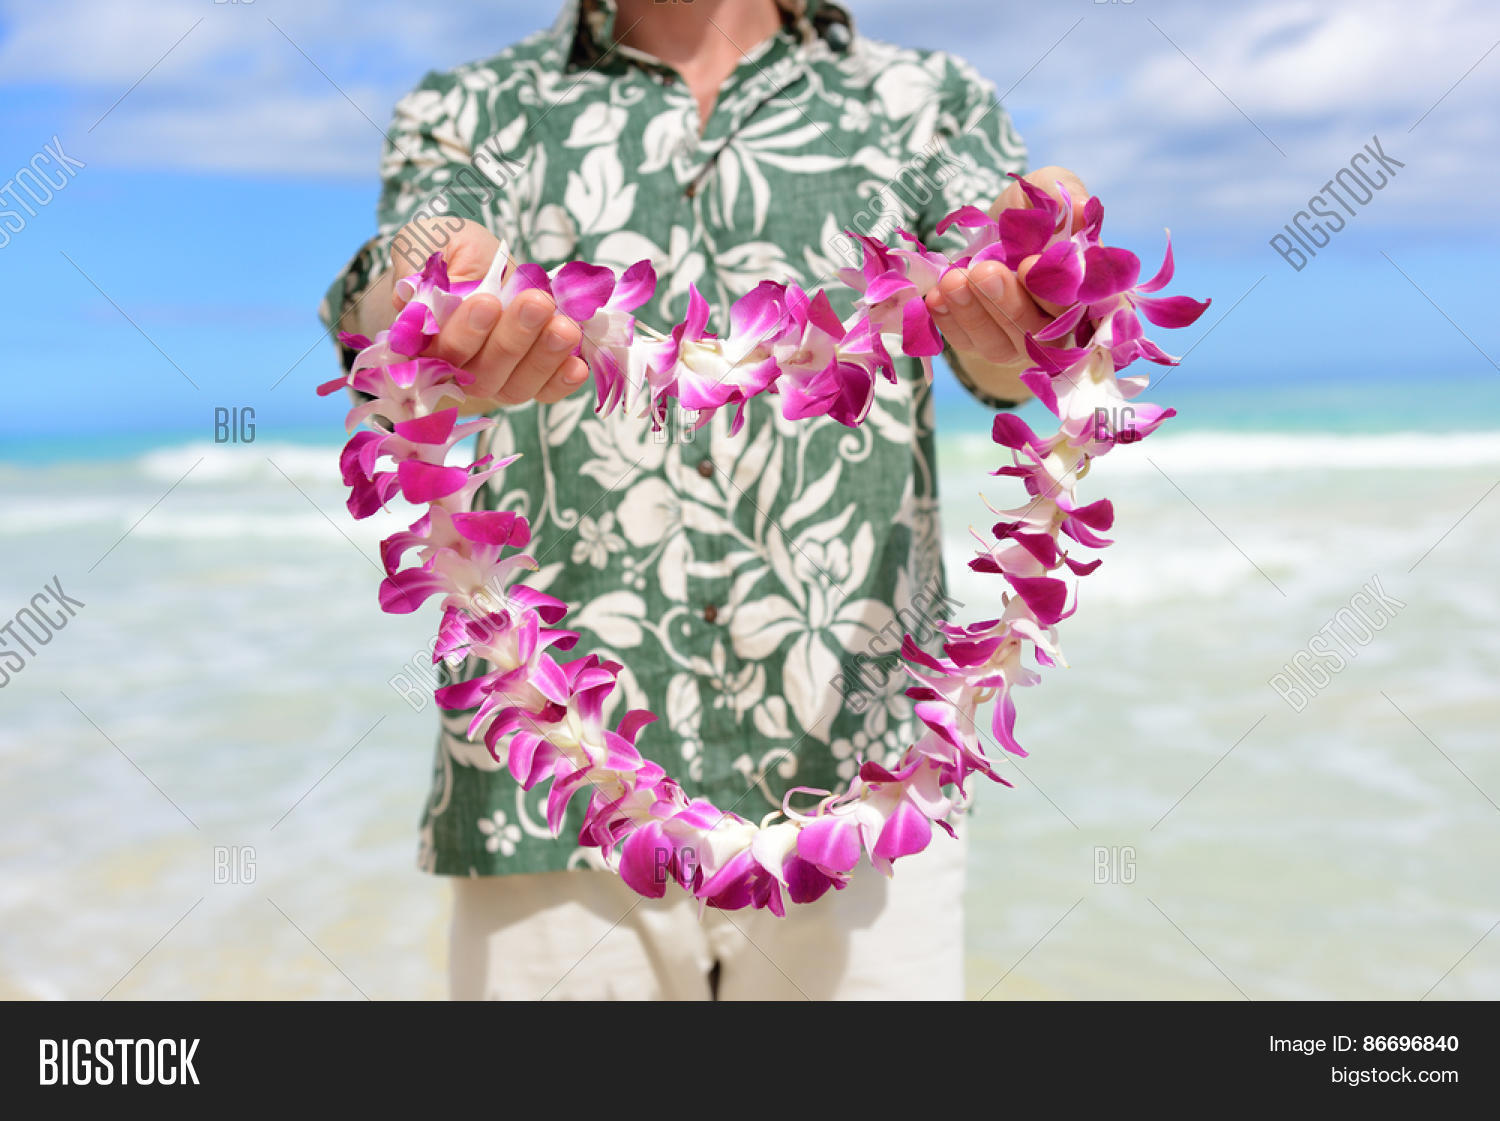 Hawaii tradition image photo free trial bigstock hawaii tradition giving a hawaiian flowers lei portrait of a male person holding a izmirmasajfo